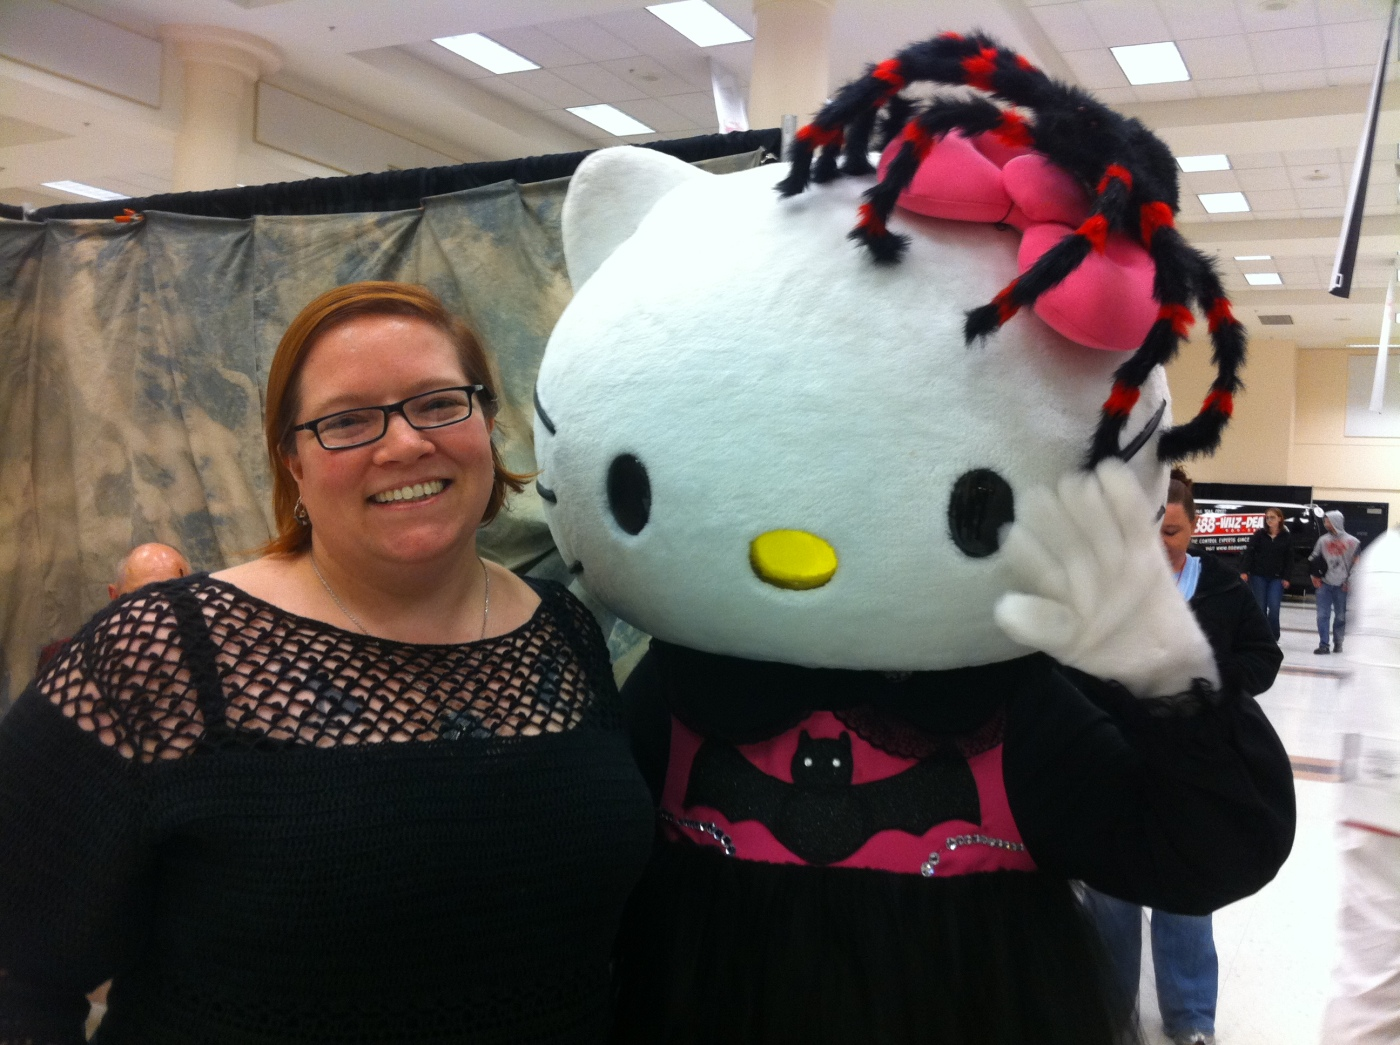 Me and Hello Kitty